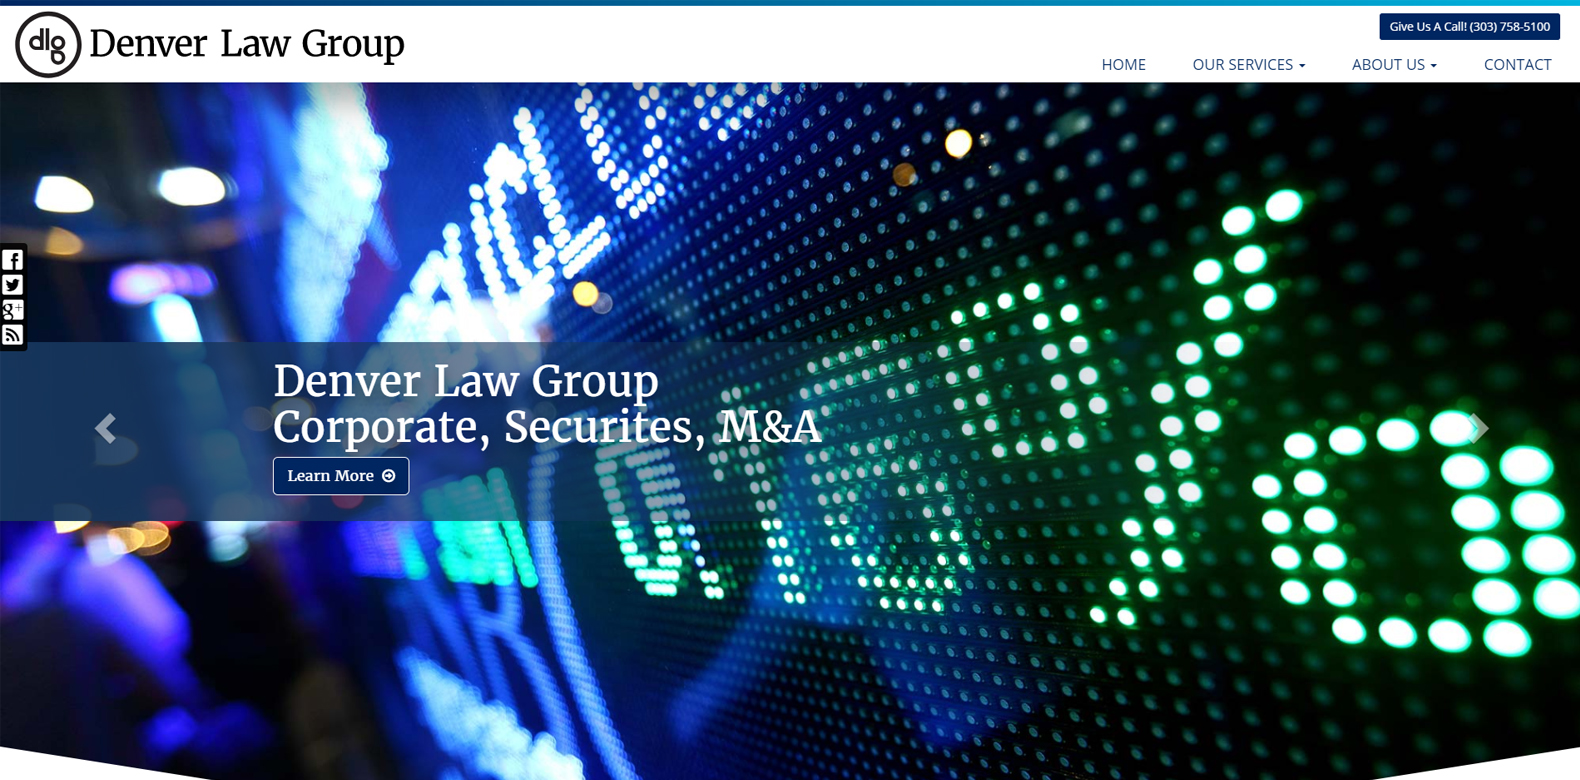 New Website Launch: DLG Law Group